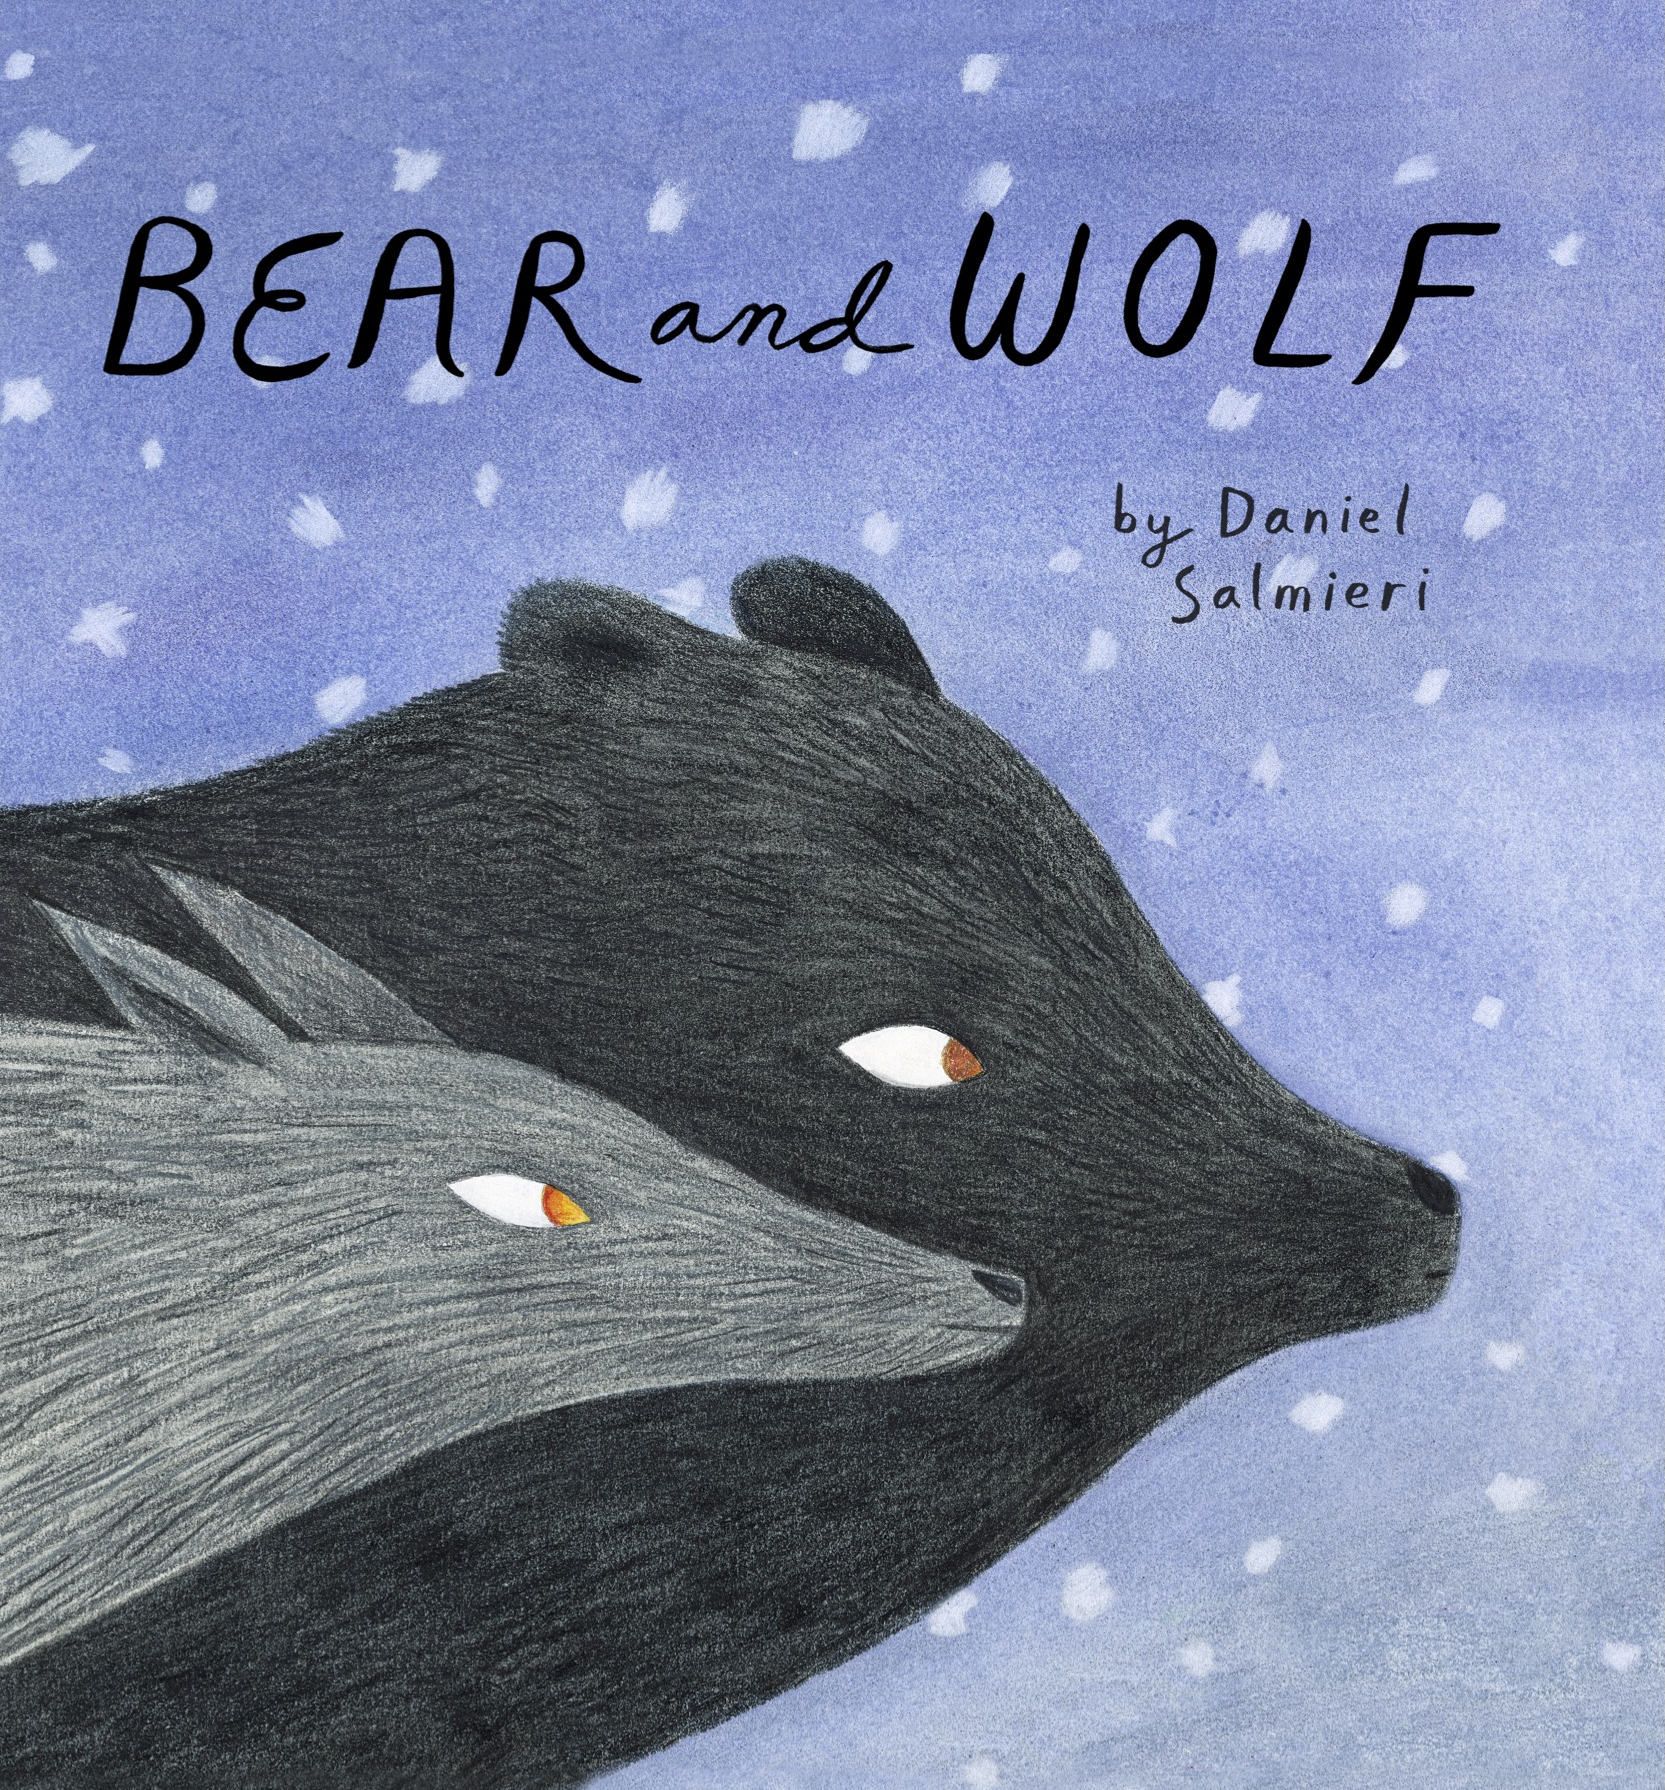 Sunday Story Time with Daniel Salmieri (Author & Illustrator of Bear and Wolf)